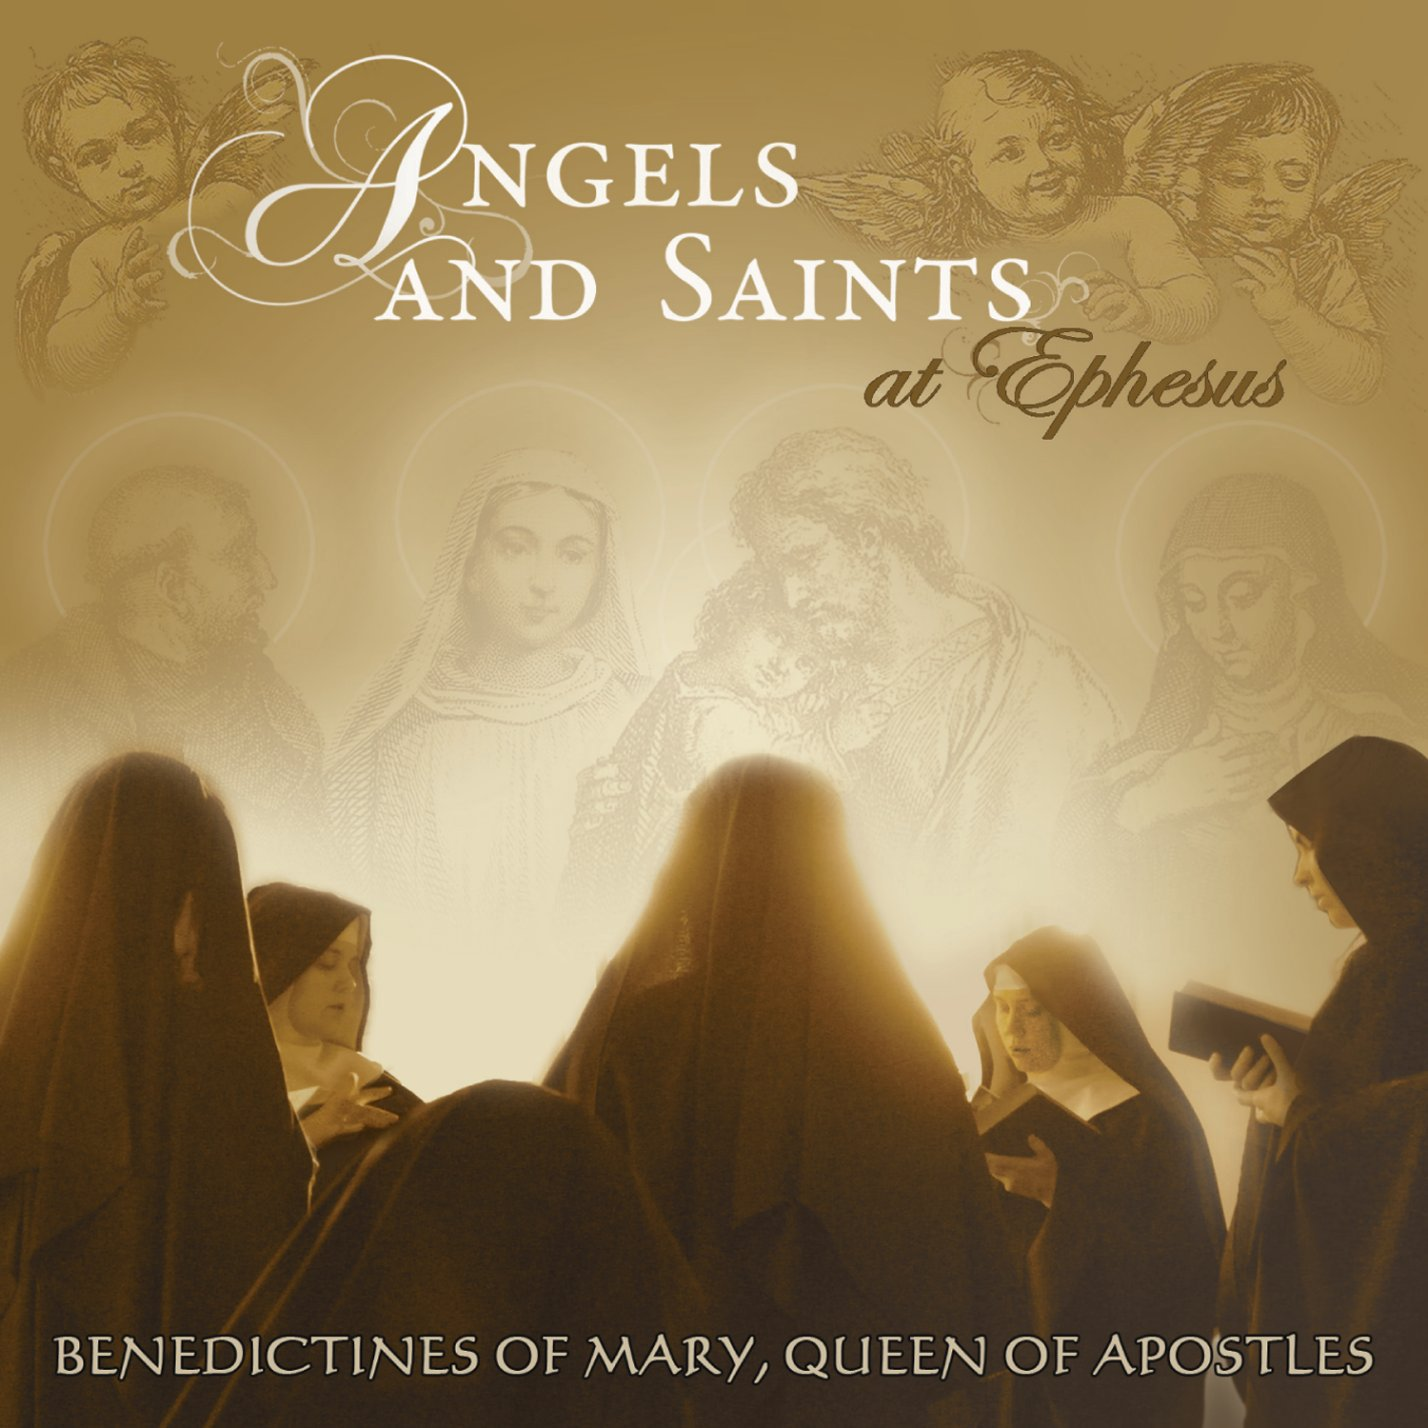 benedictines of mary queen of apostles angels and saints at